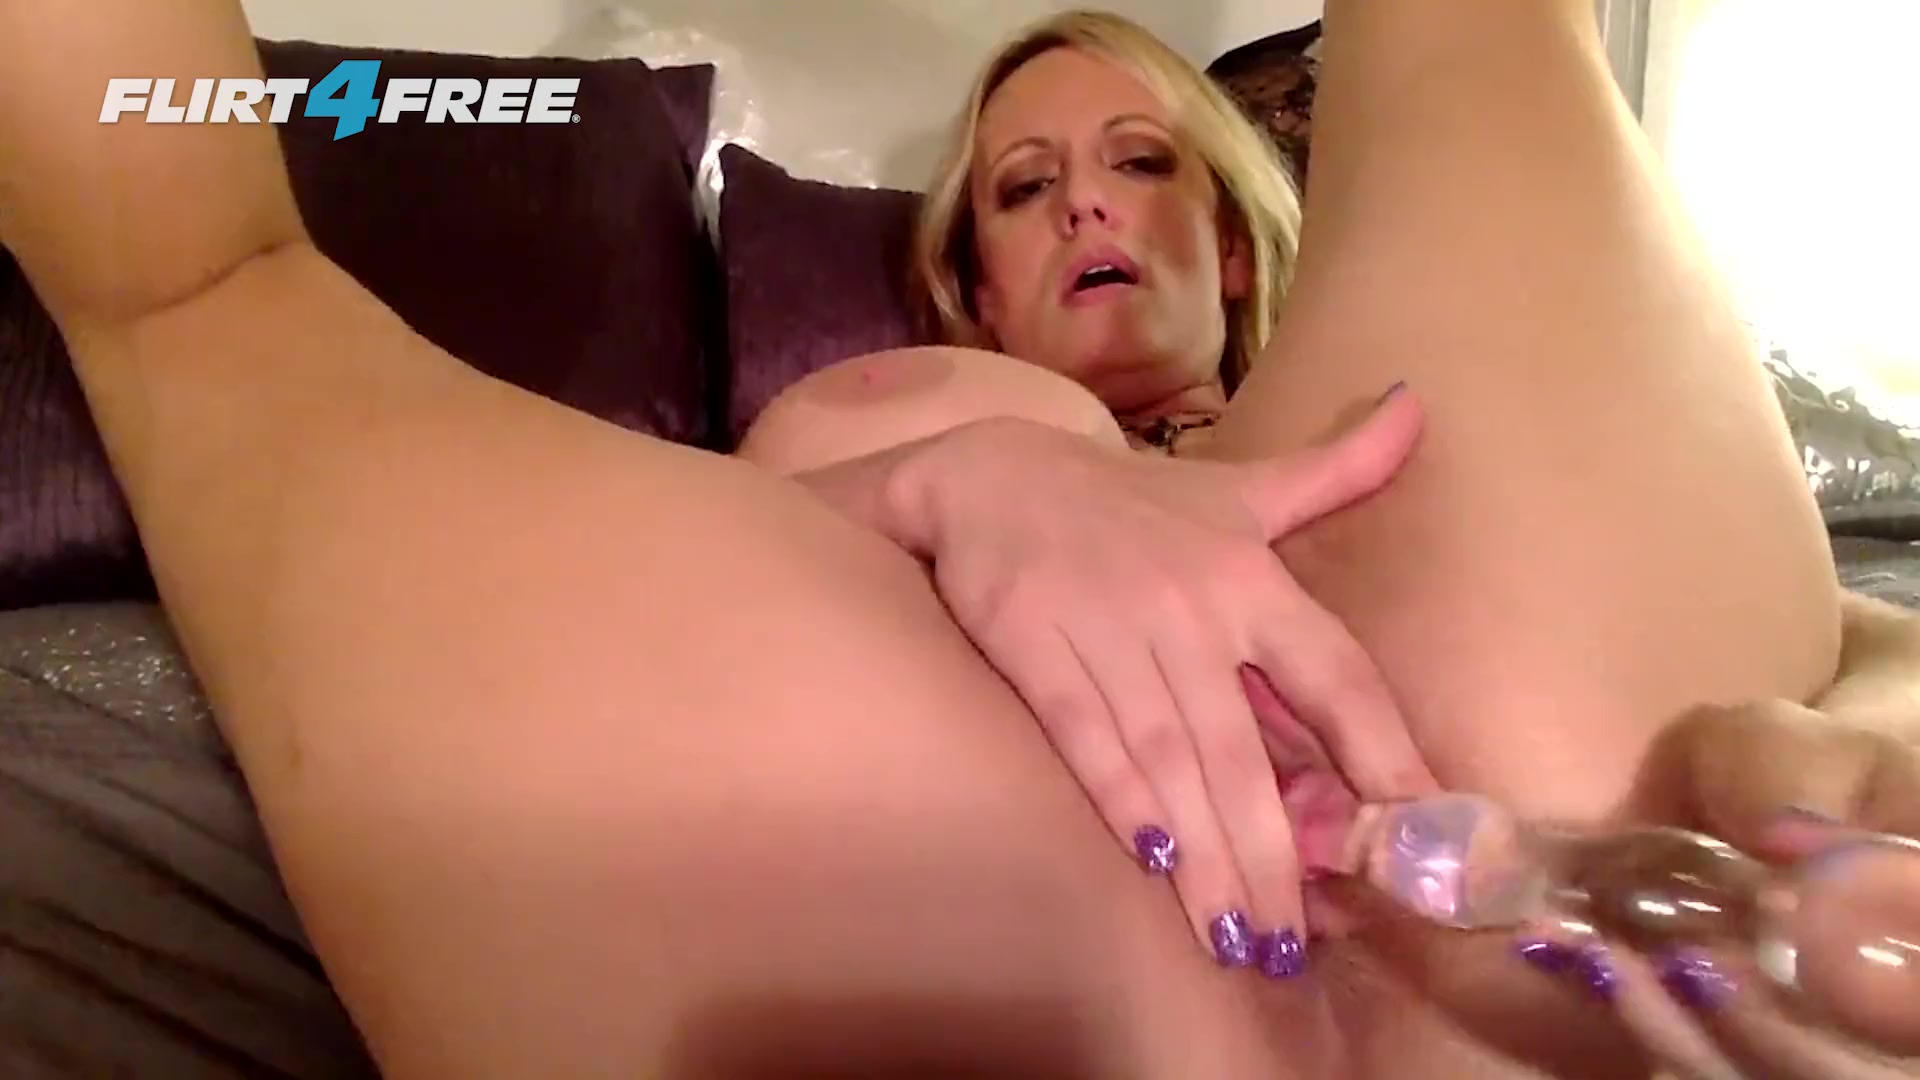 Stormy daniels anal nude pics